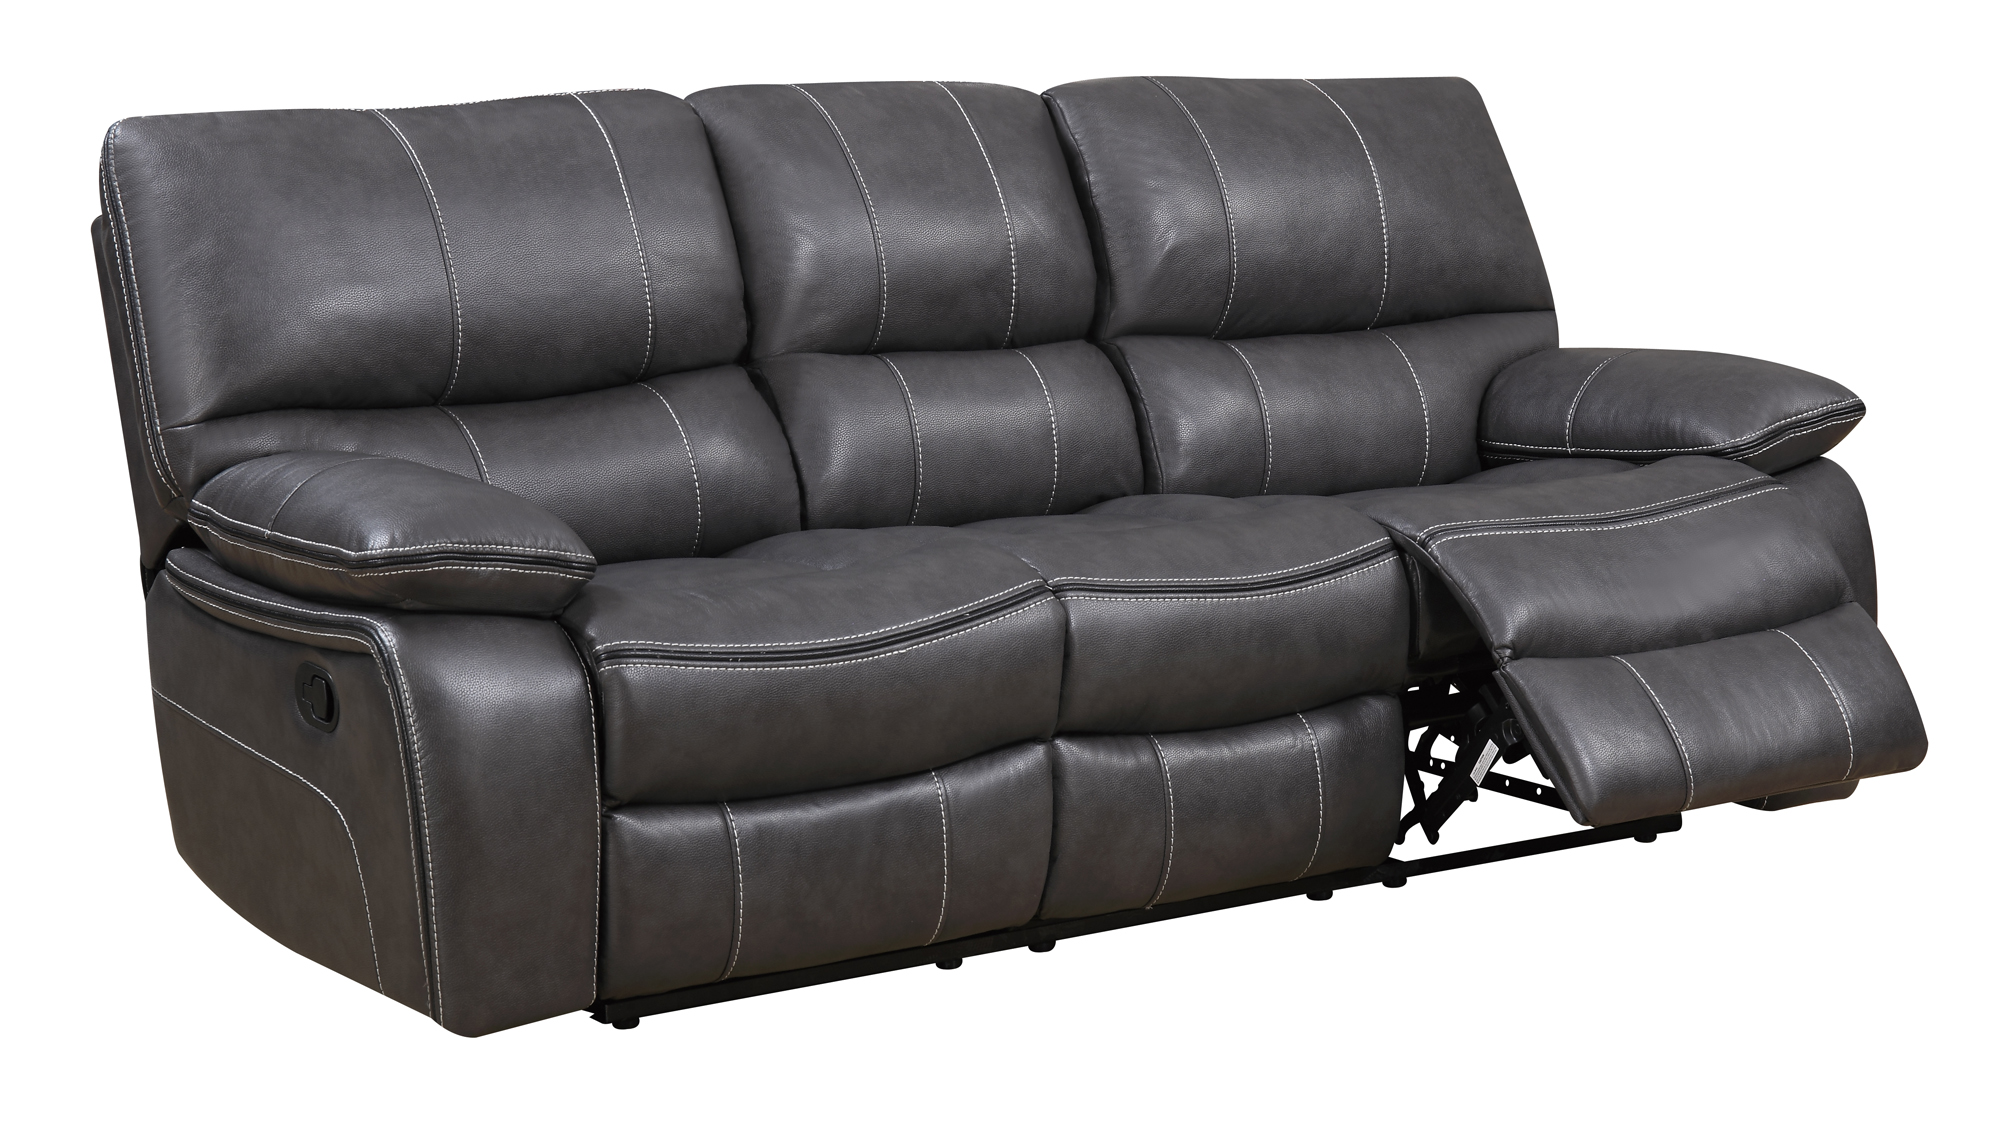 Leather Sofa Clearance Decorating Interior Of Your House